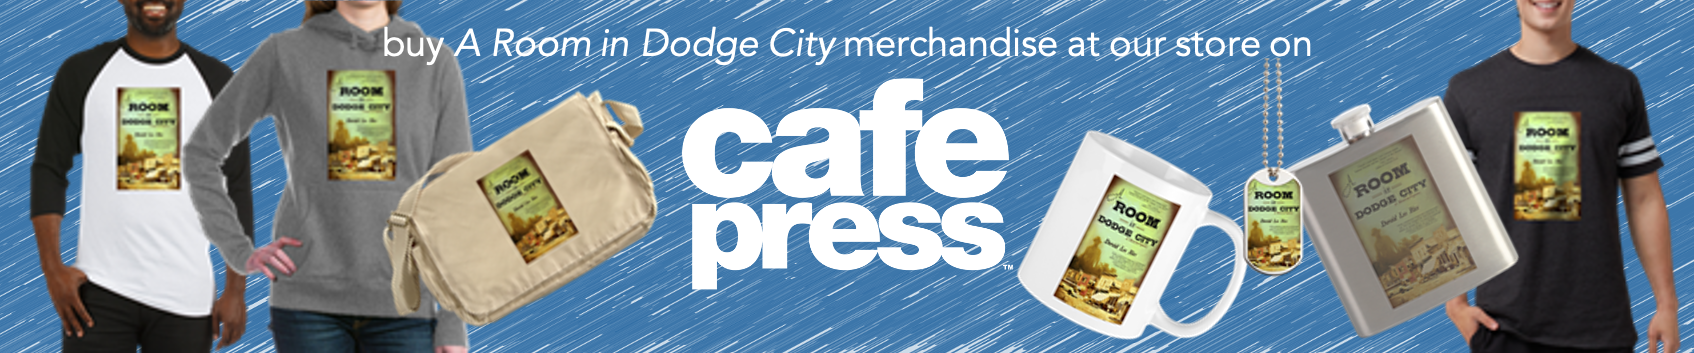 Buy A Room in Dodge City merchandise at Cafe Press